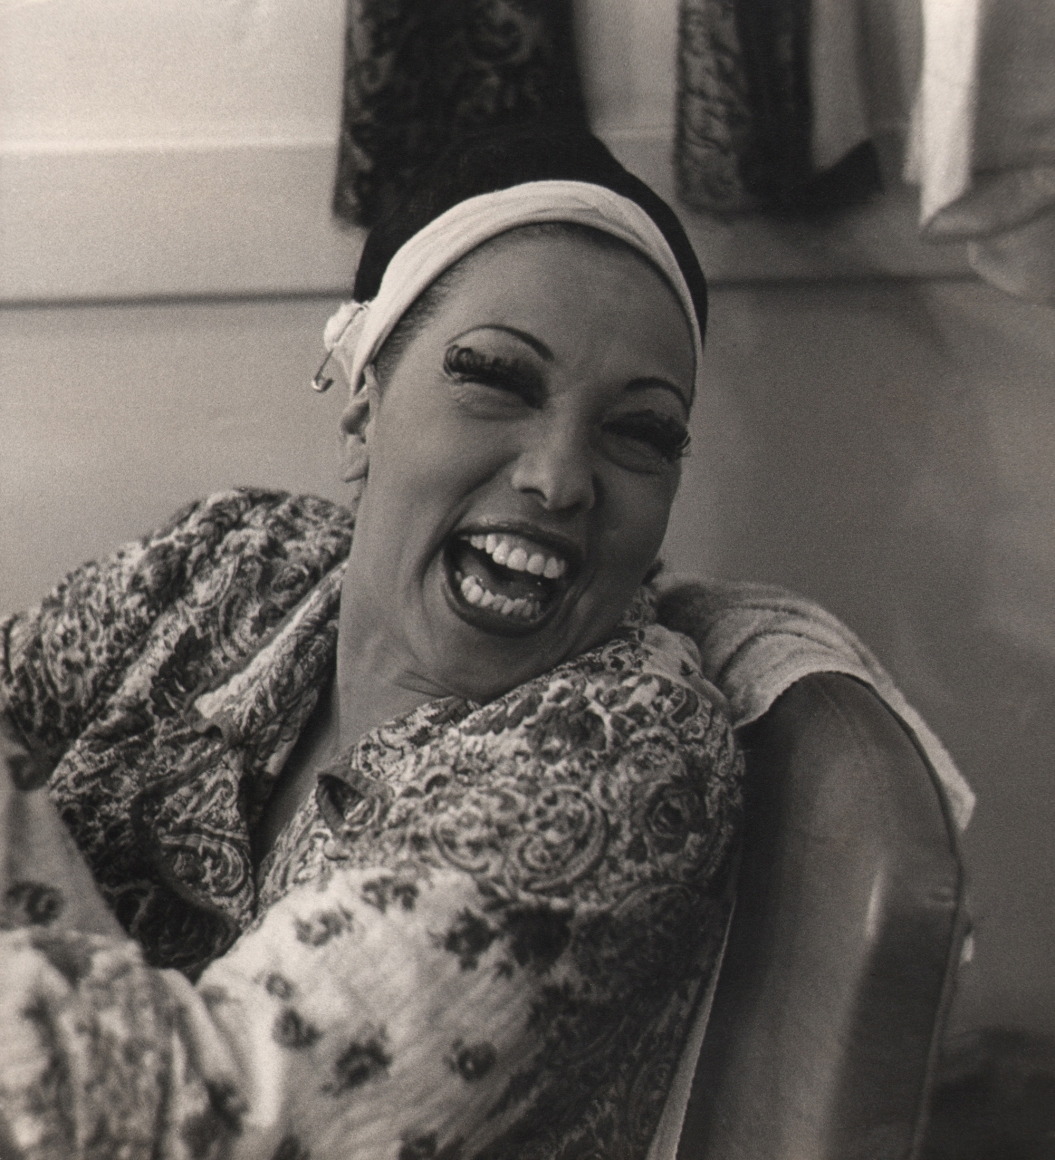 Florence Homolka, Josephine Baker, c. 1958. Subject is pictured seated and smiling, looking off to the right.